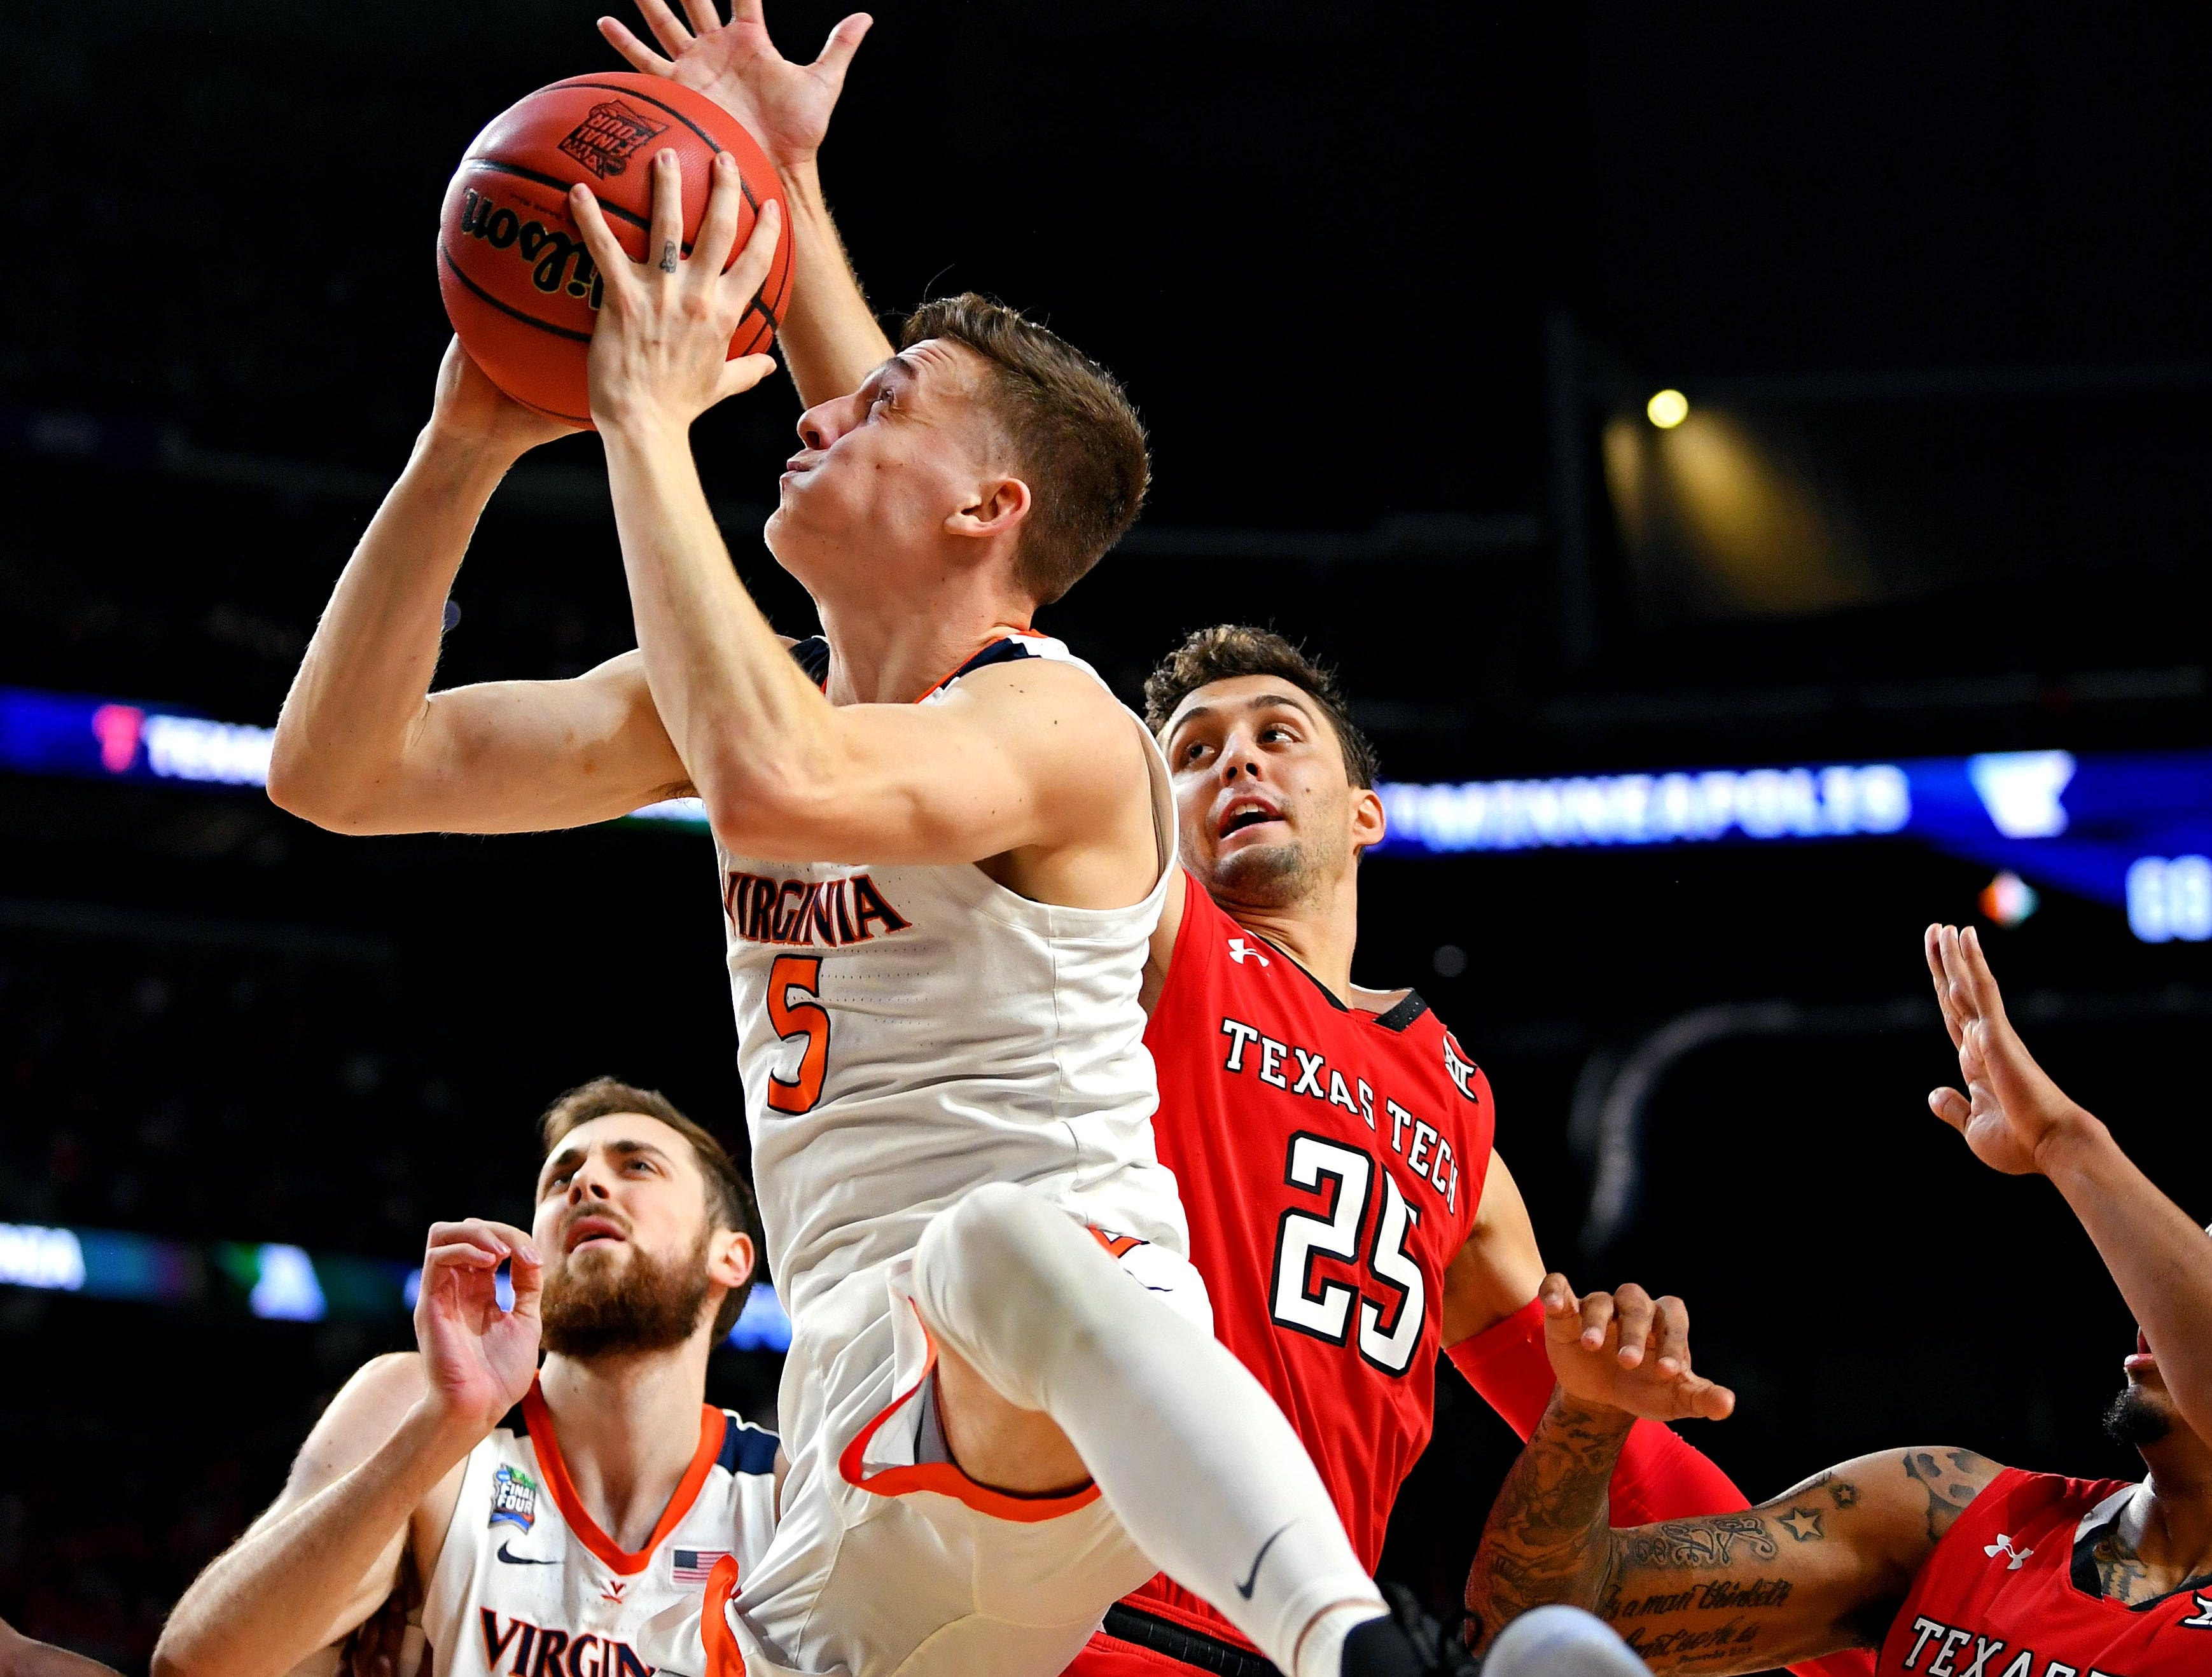 Apr 8, 2019; Minneapolis, MN, USA; Virginia Cavaliers guard Kyle Guy (5) shoots the ball against Texas Tech Red Raiders guard Davide Moretti (25) during the first half  in the championship game of the 2019 men's Final Four at US Bank Stadium. Mandatory Credit: Bob Donnan-USA TODAY Sports